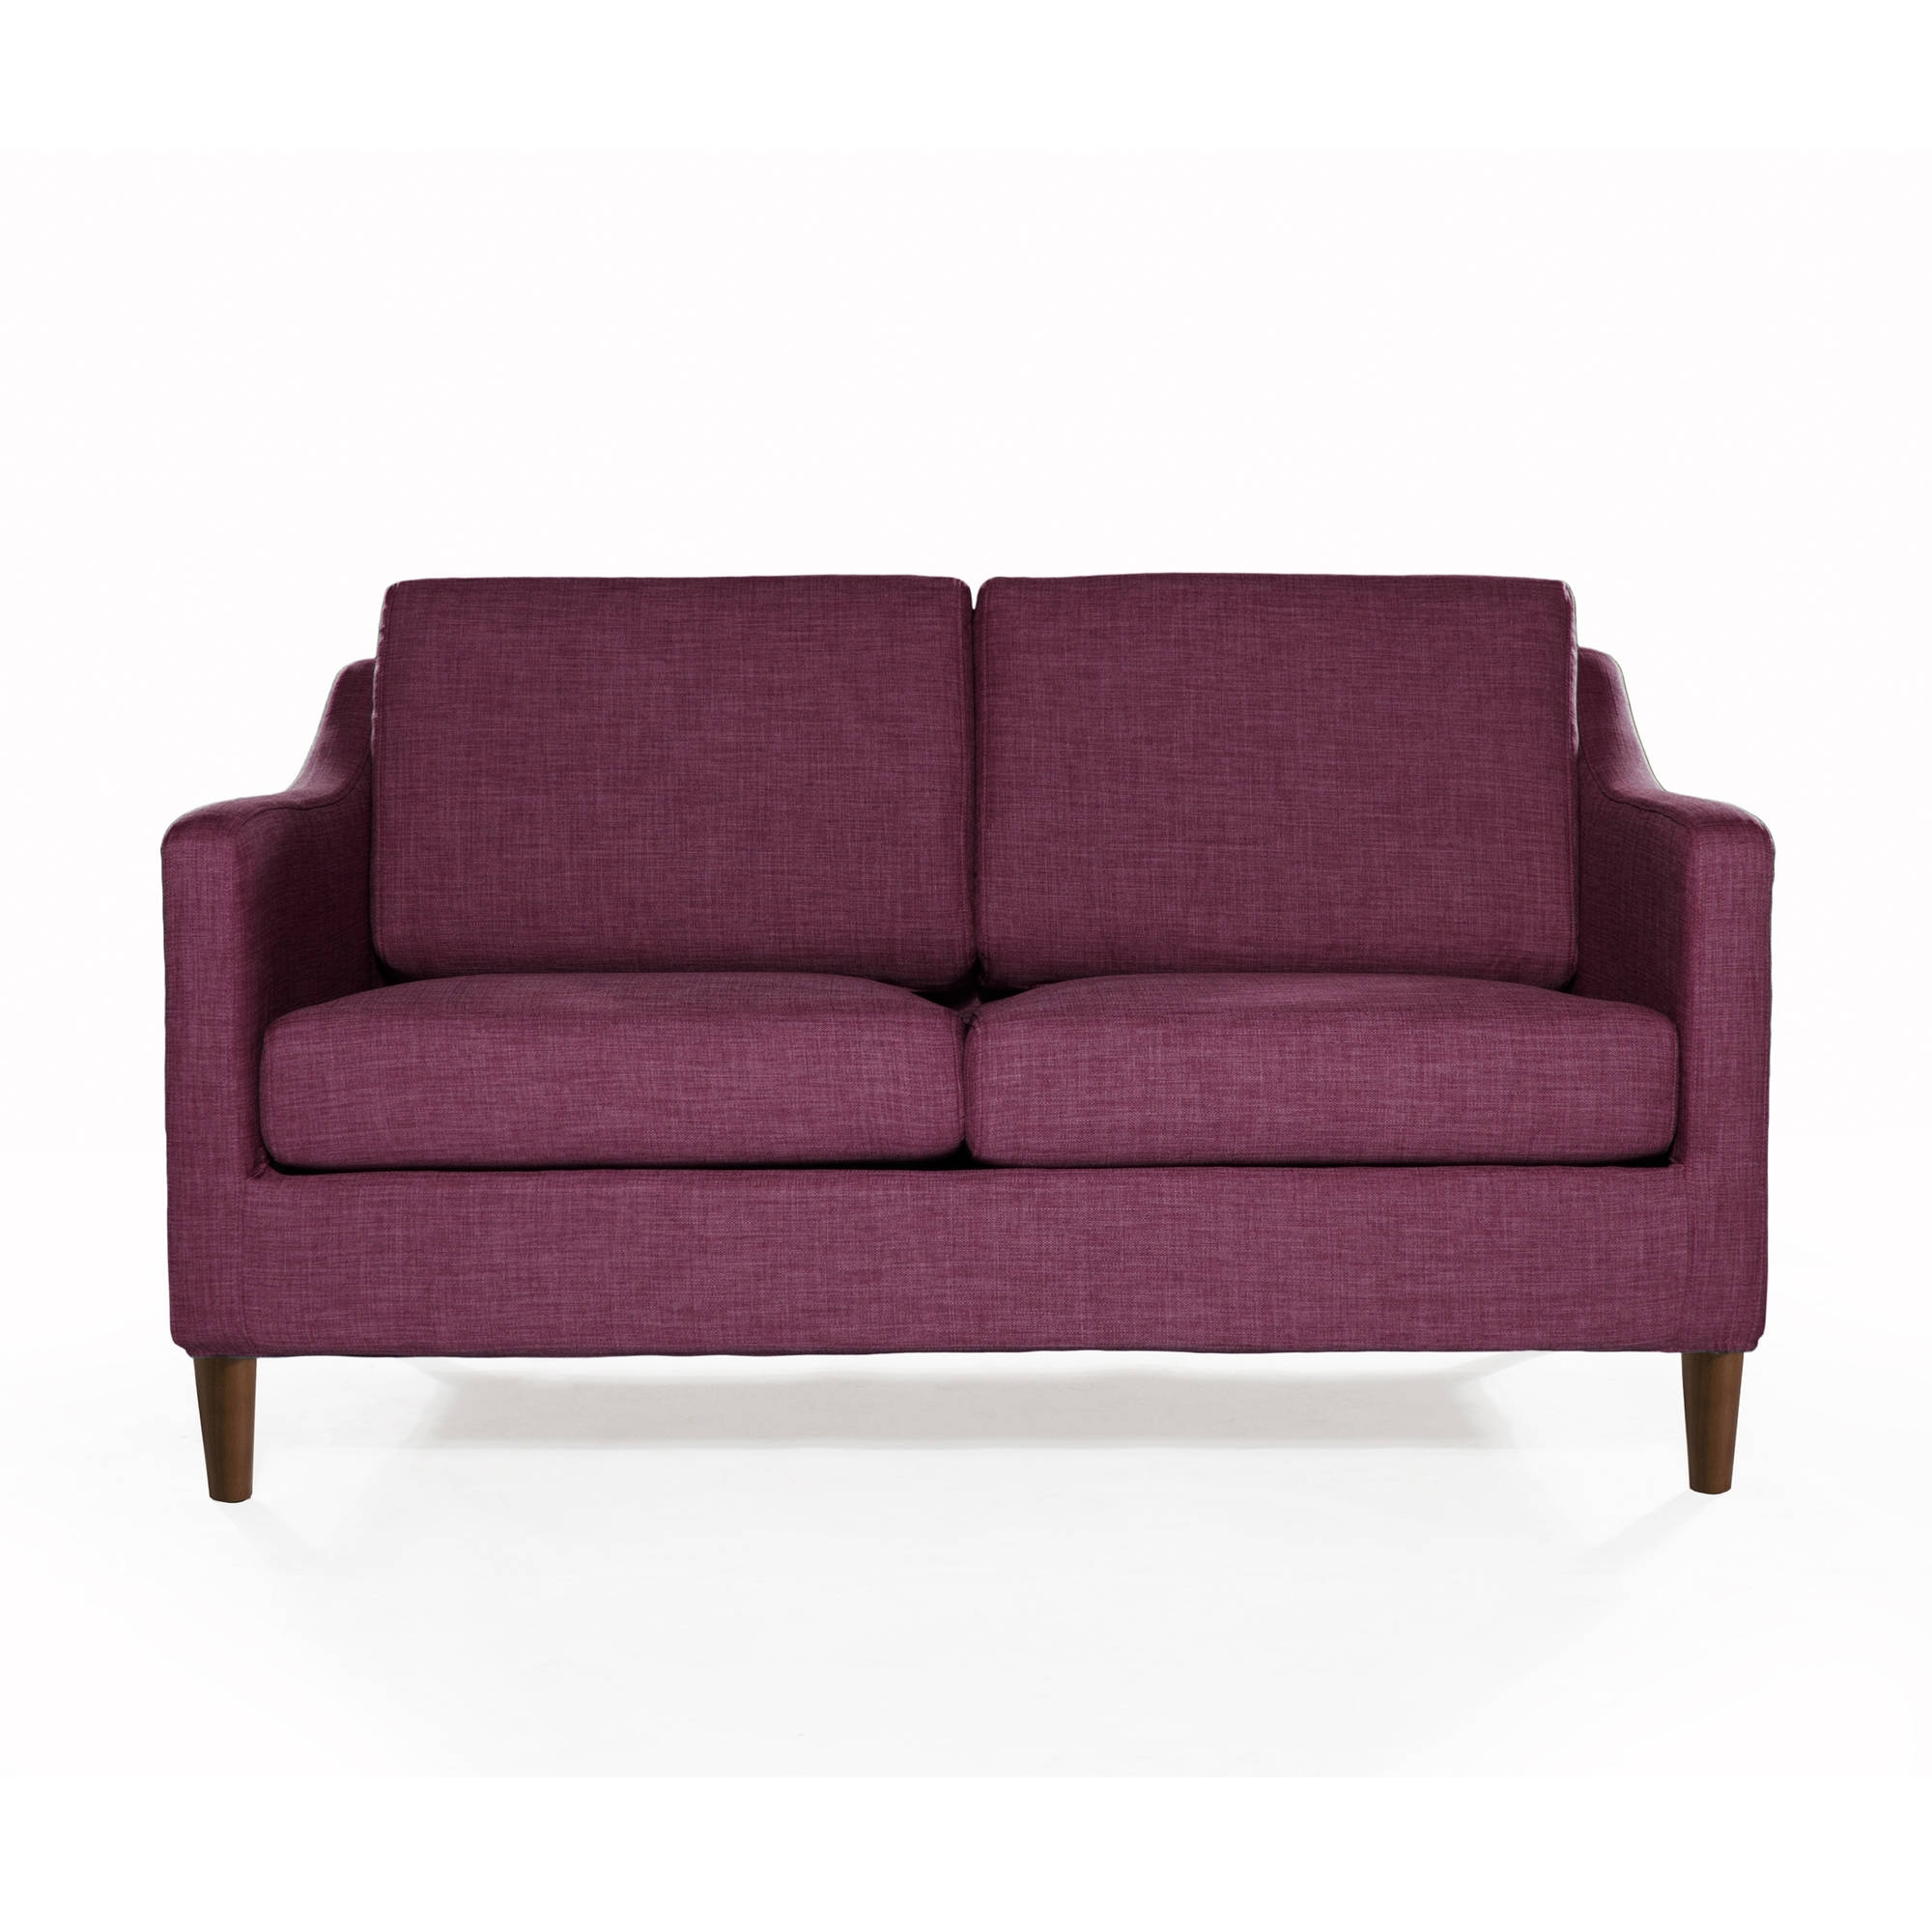 Popular Photo of Sectional Sofas At Walmart